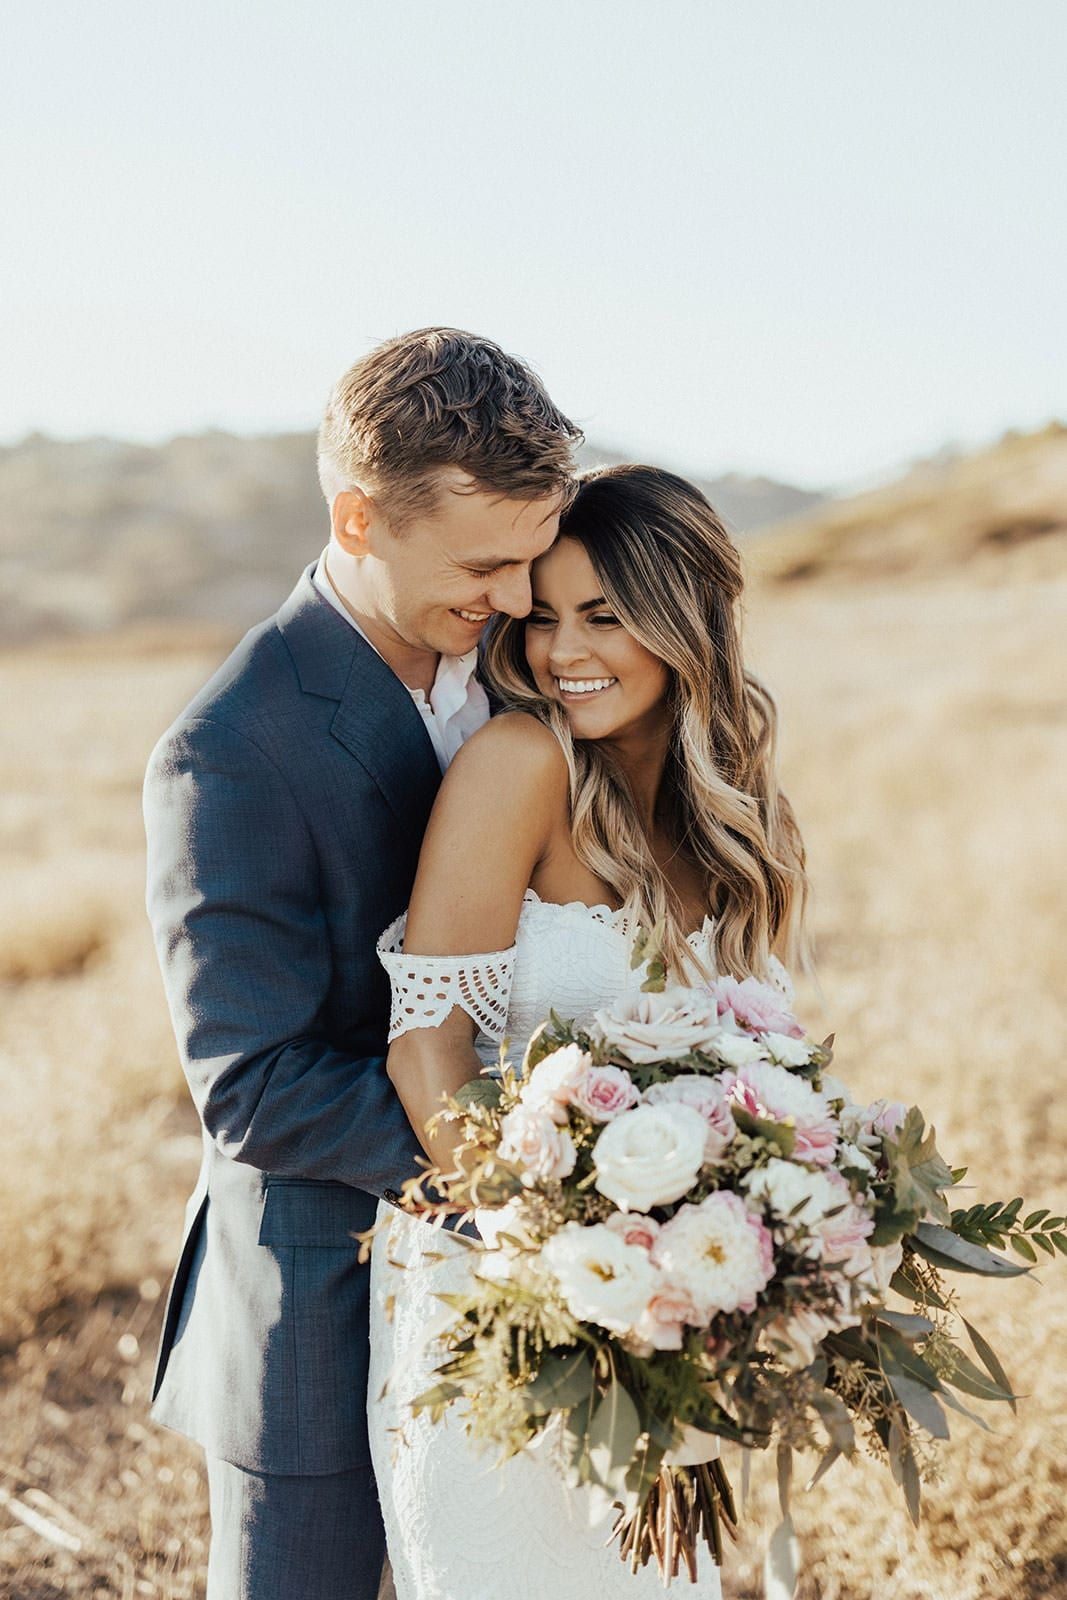 Real Weddings | Lorrana in the Paloma Gown | Grace Loves Lace